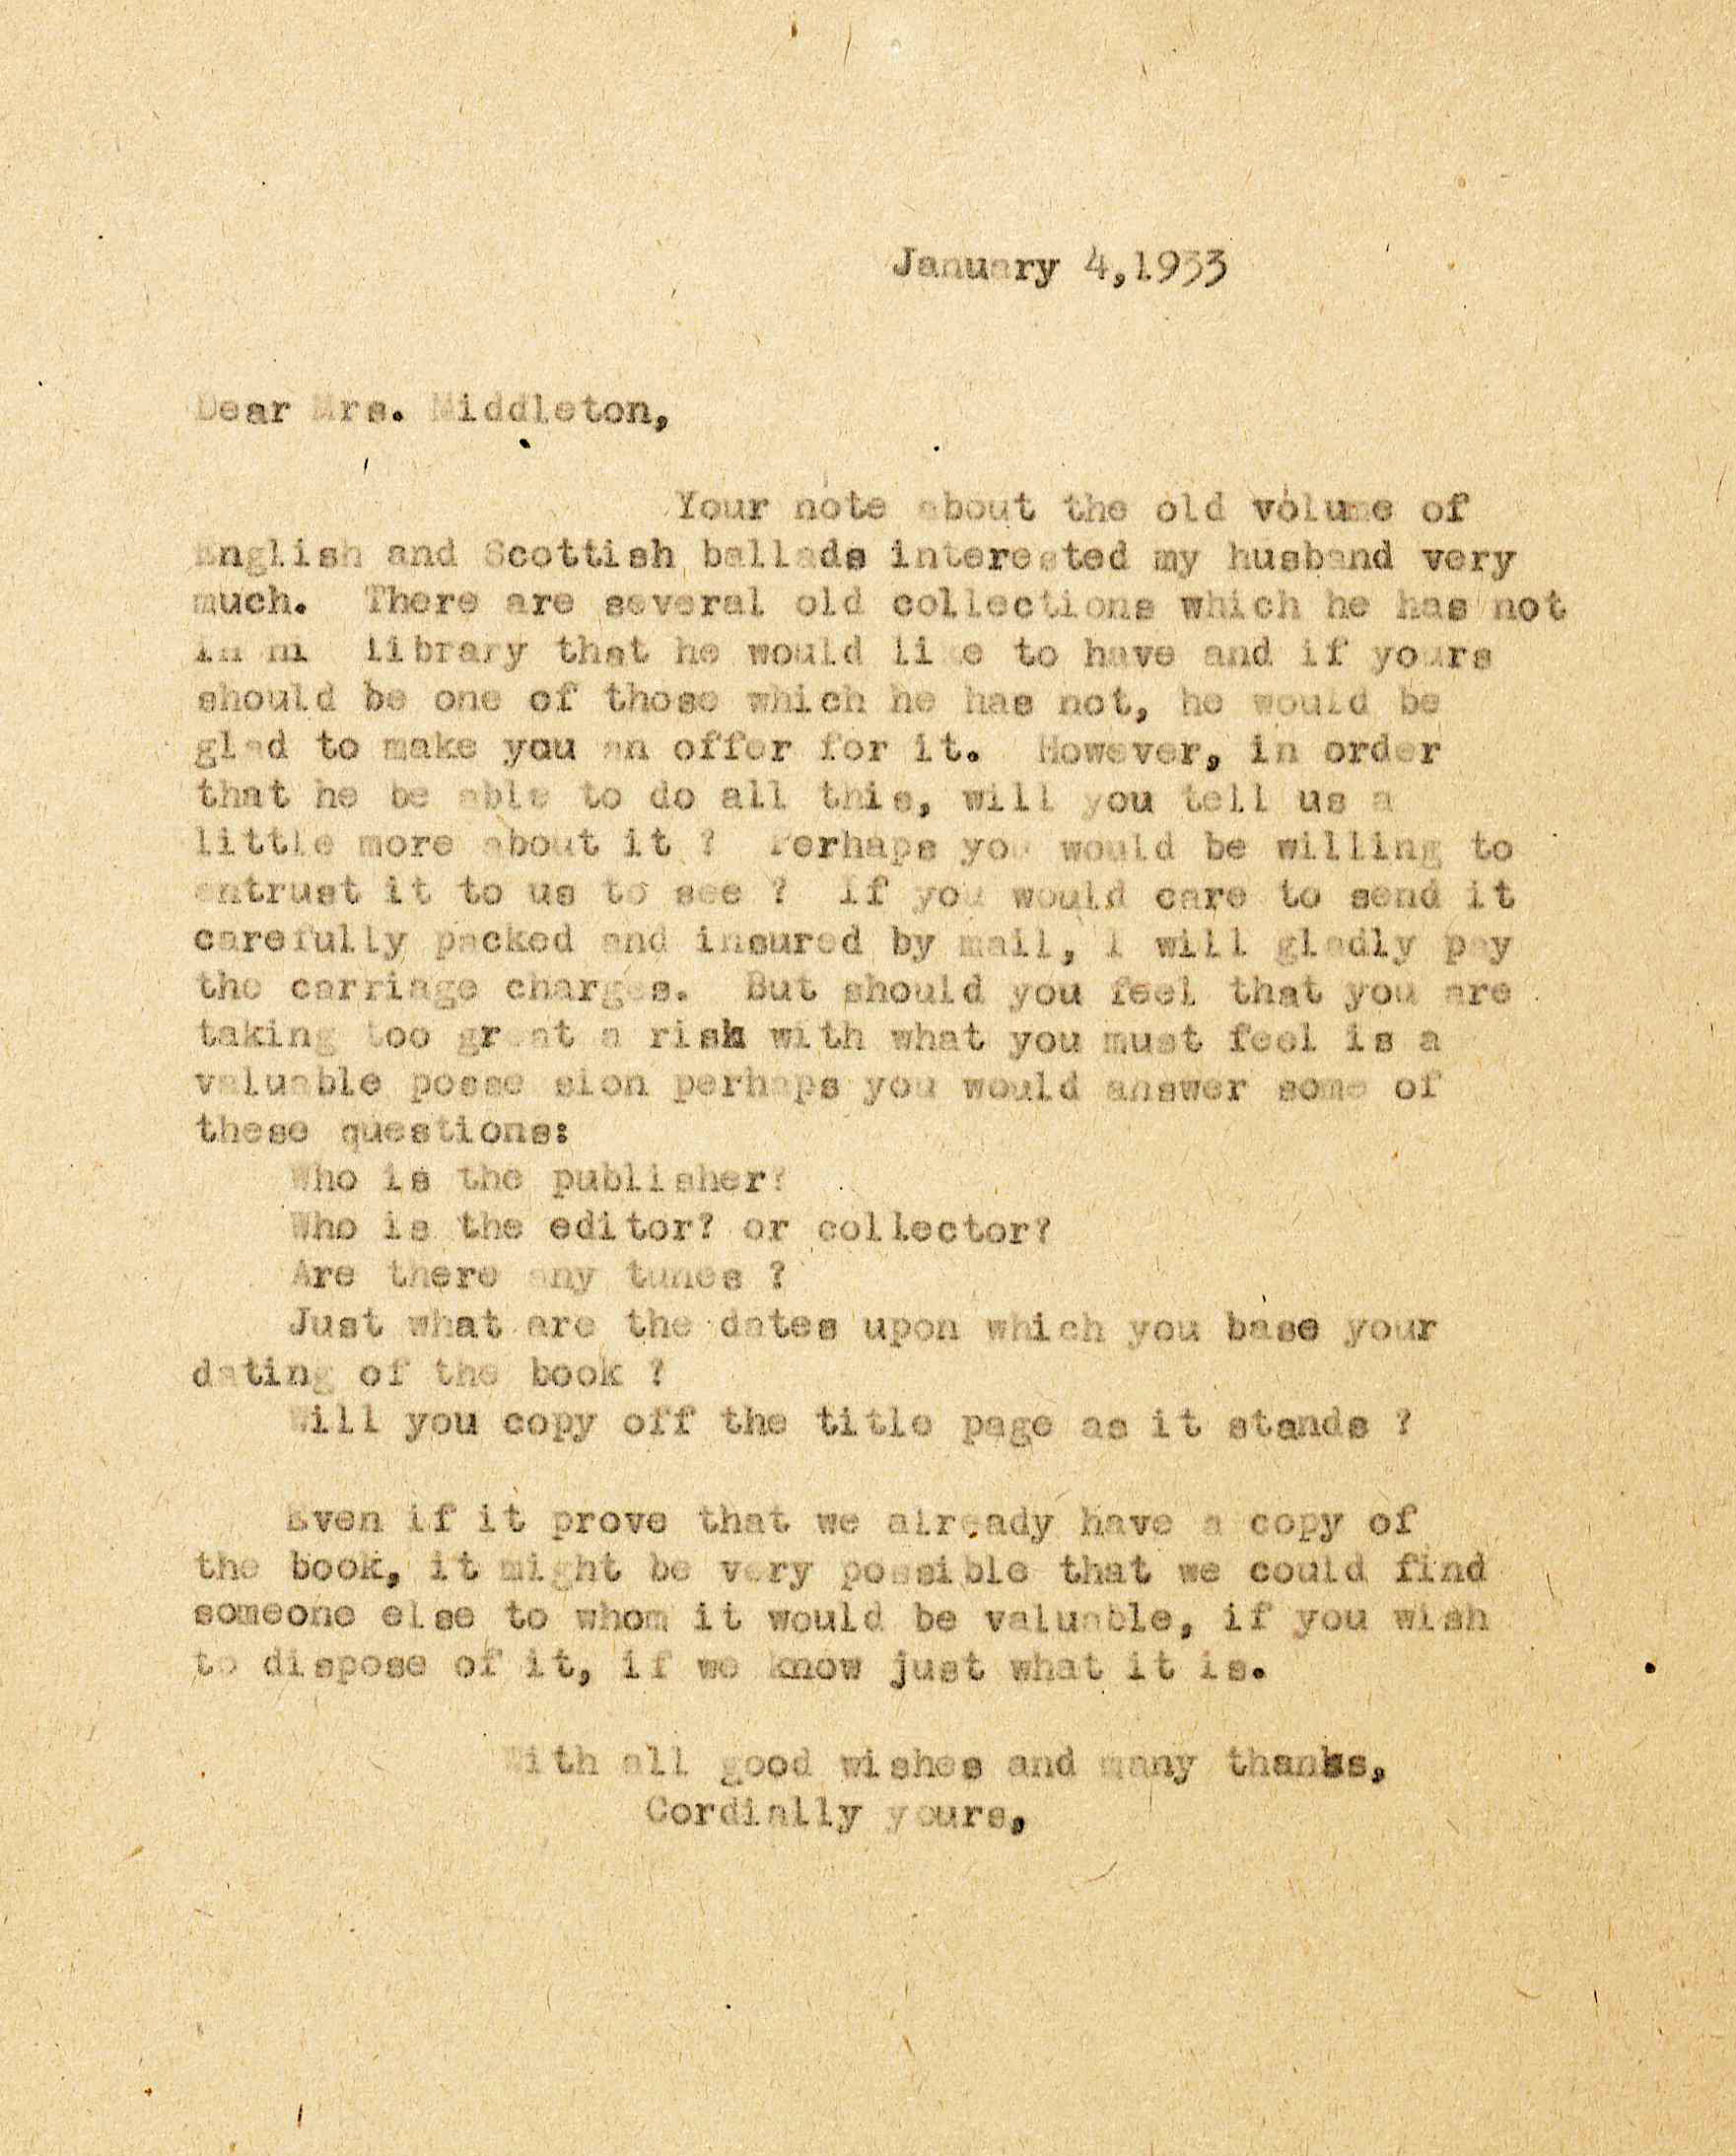 Powell letter to , 1933 (Image by Caroline Newcomb)